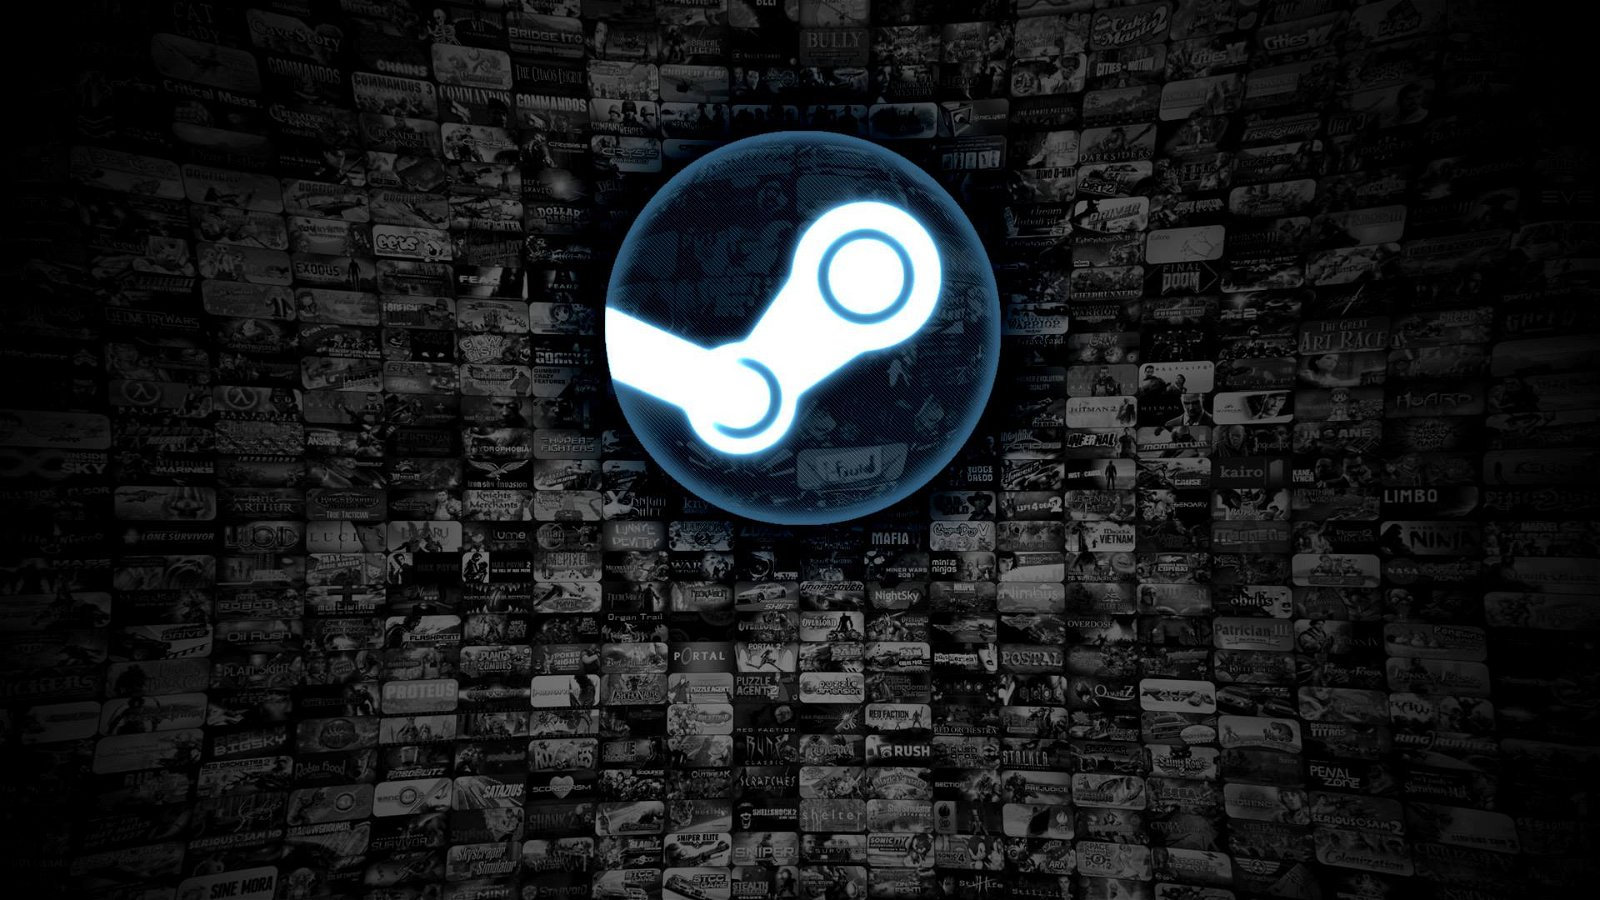 Steam Finds Win 10 Losing Players, Win 7 and Linux Gaming Rising